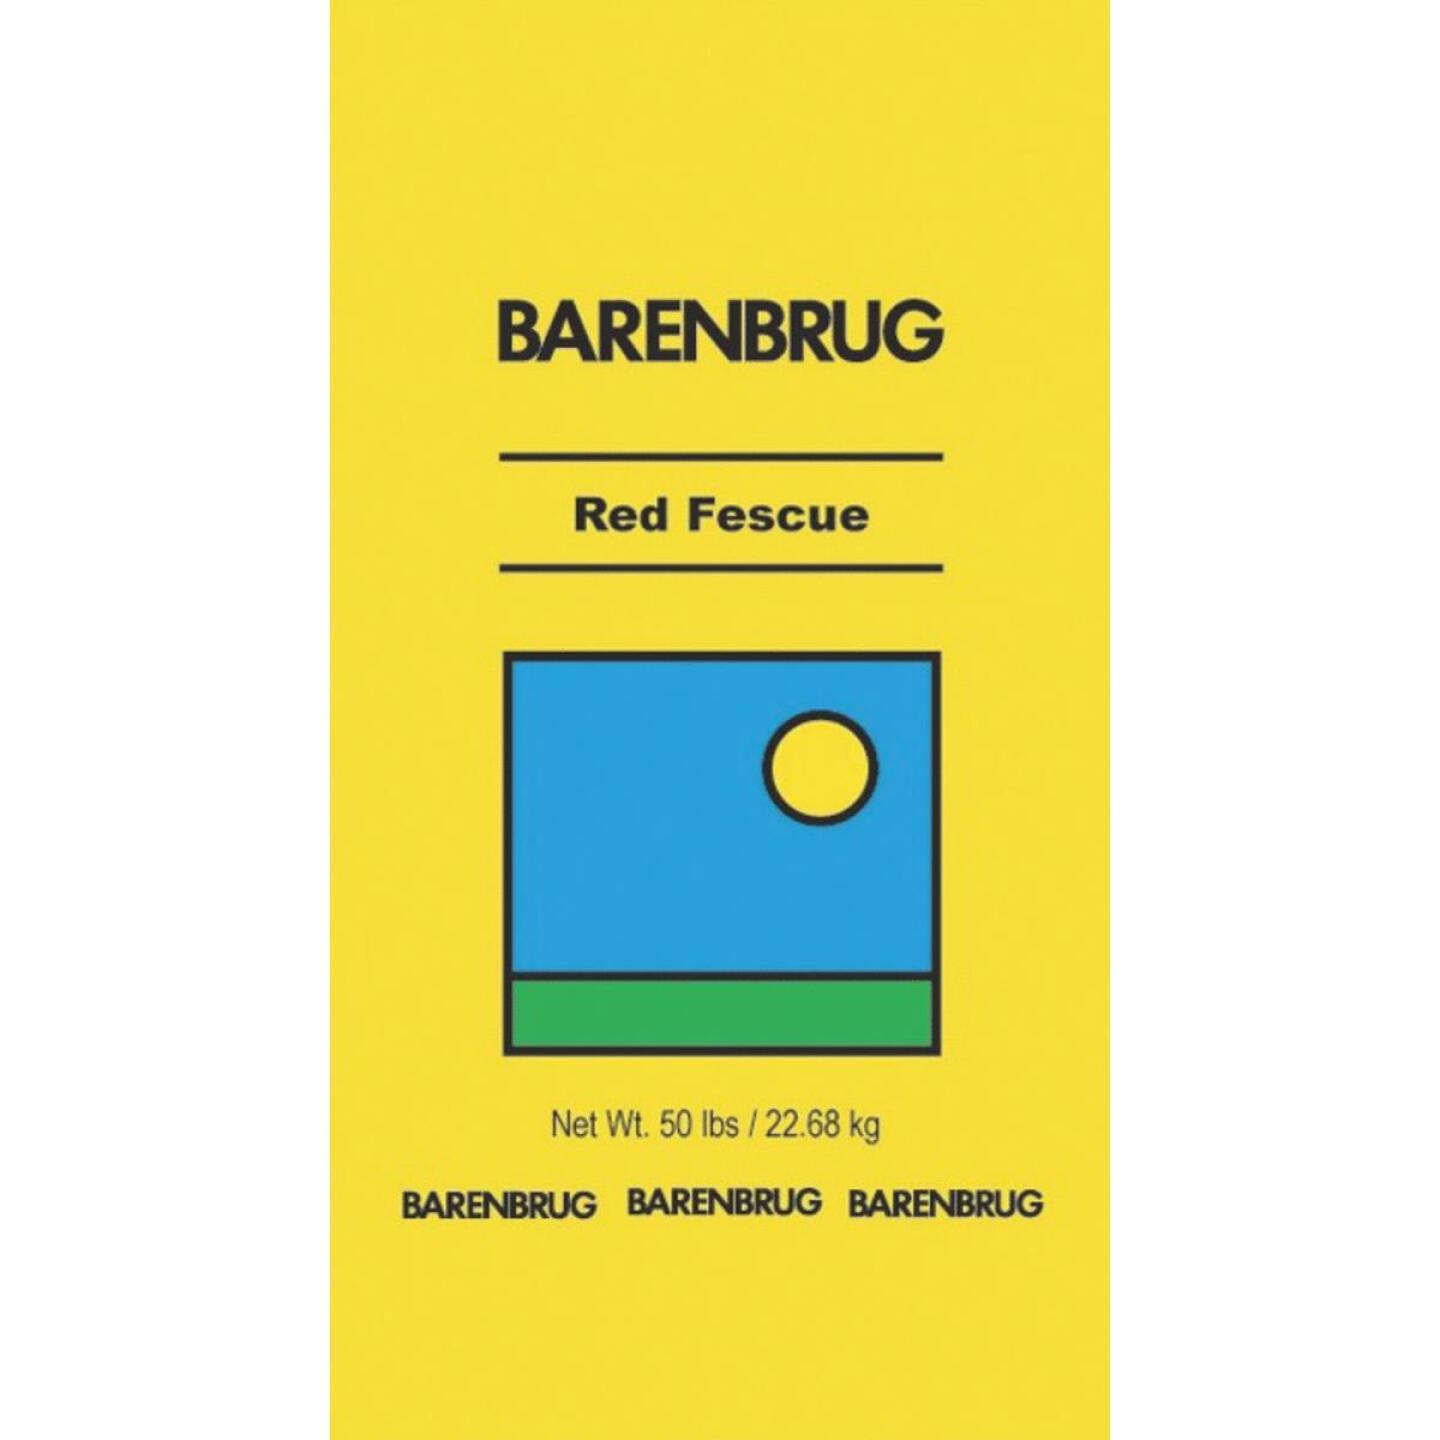 Barenbrug 50 Lb. 10,000 Sq. Ft. Coverage 100% Creeping Red Fescue Grass Seed Image 1